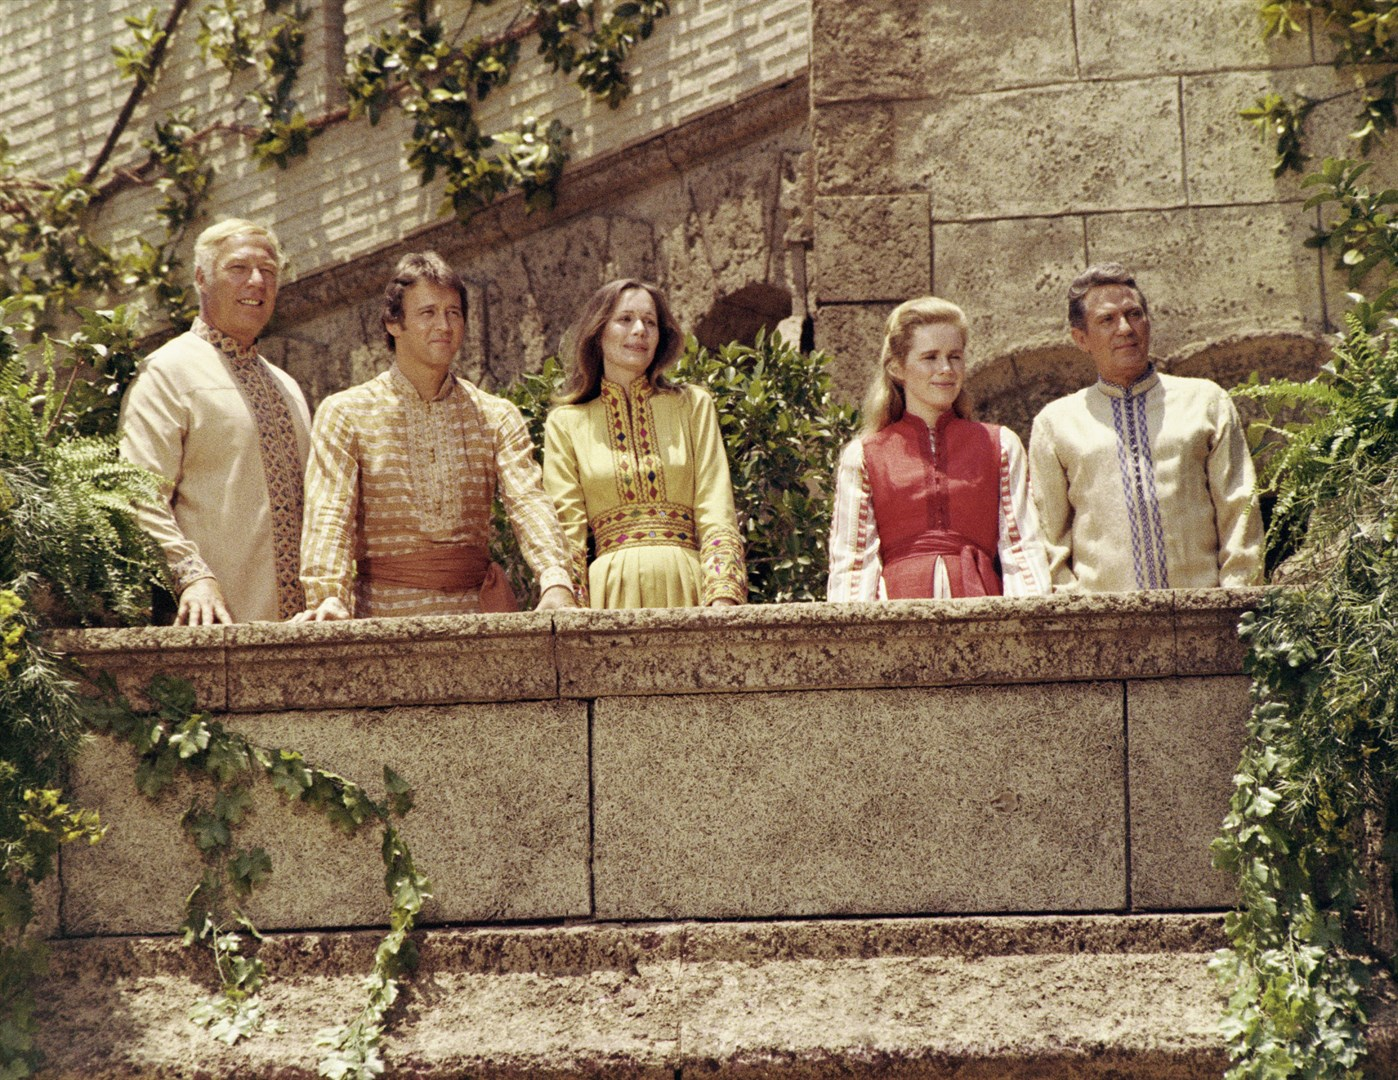 The Westerners in Shangri-La - (l to r) George Kennedy, Bobby Van, Olivia Hussey, Liv Ullman and Peter Finch in Lost Horizon (1973)